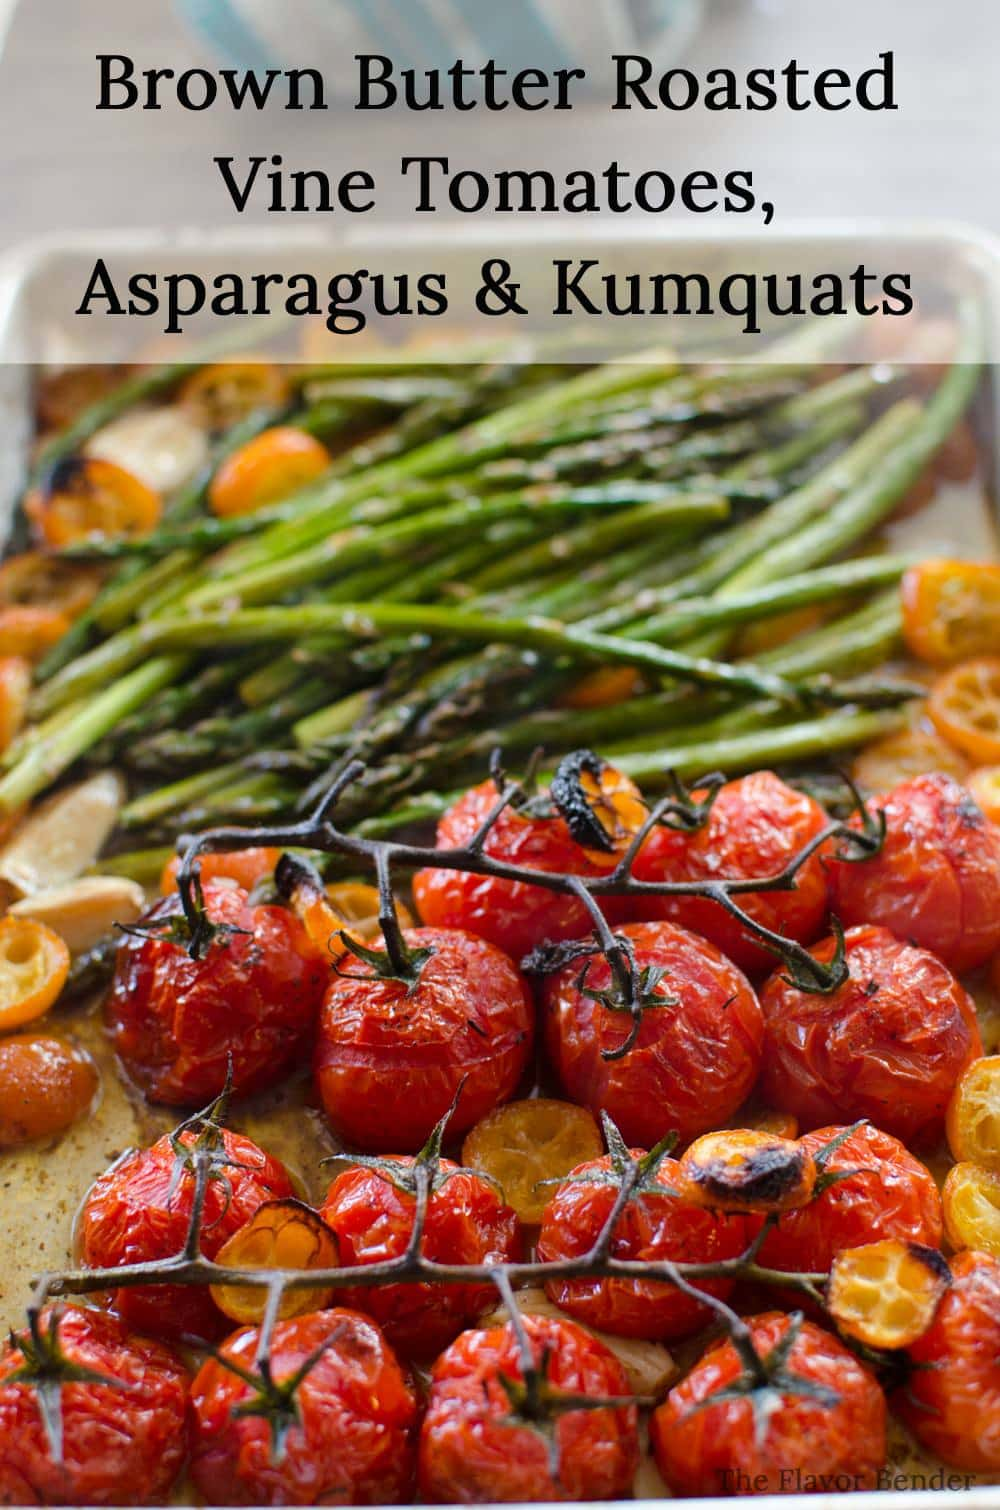 Brown Butter Roasted Tomatoes, Asparagus and Kumquats | The Flavor ...